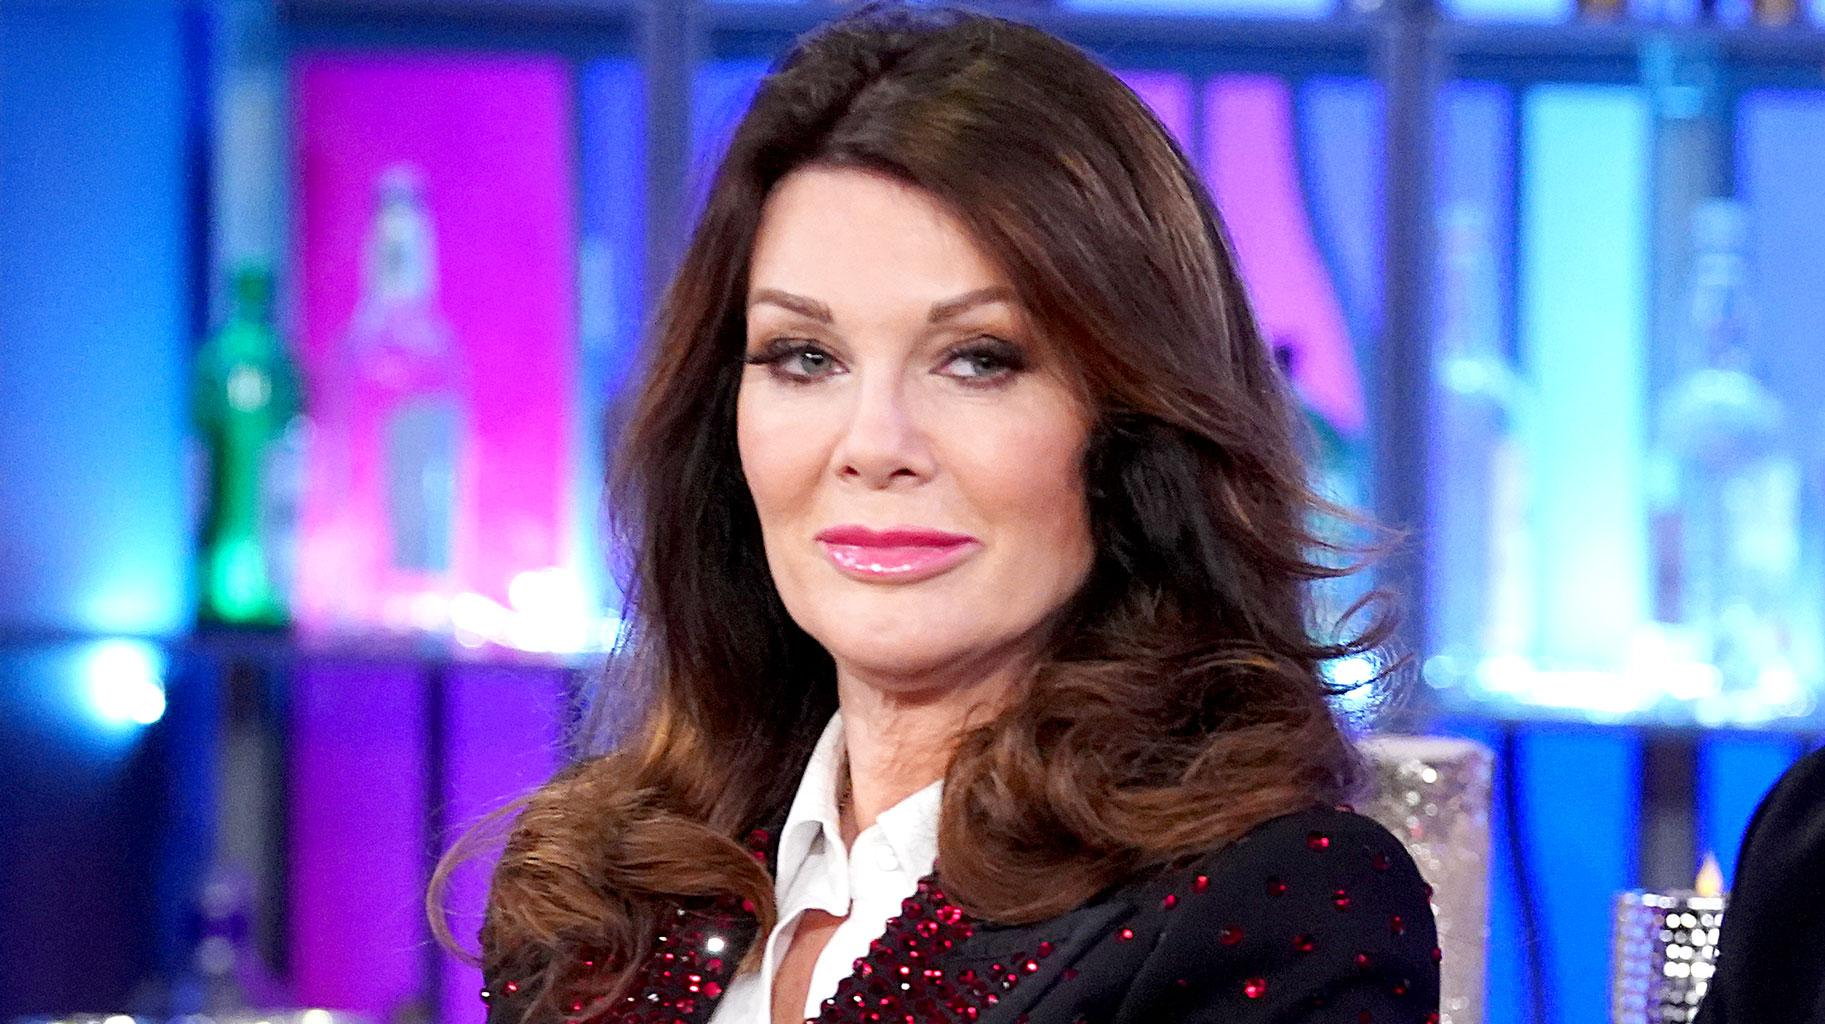 Lisa Vanderpump Claps Back After Learning About The 'Nastiness' Said About Her During The RHOBH Season 9 Finale